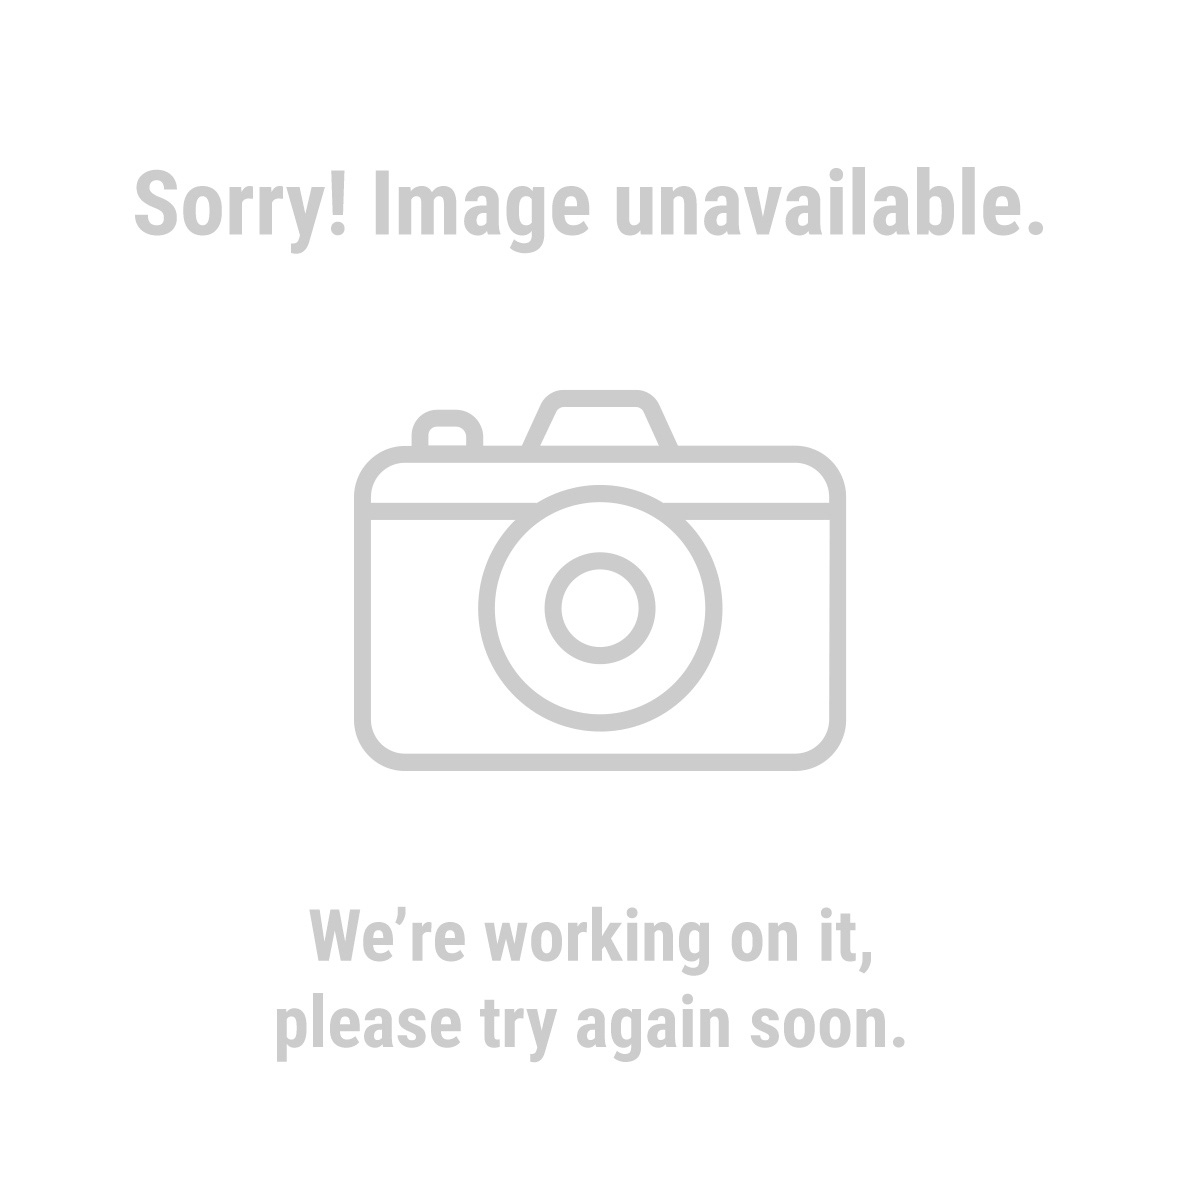 Central Pneumatic 68248 160 PSI Dry Gauge